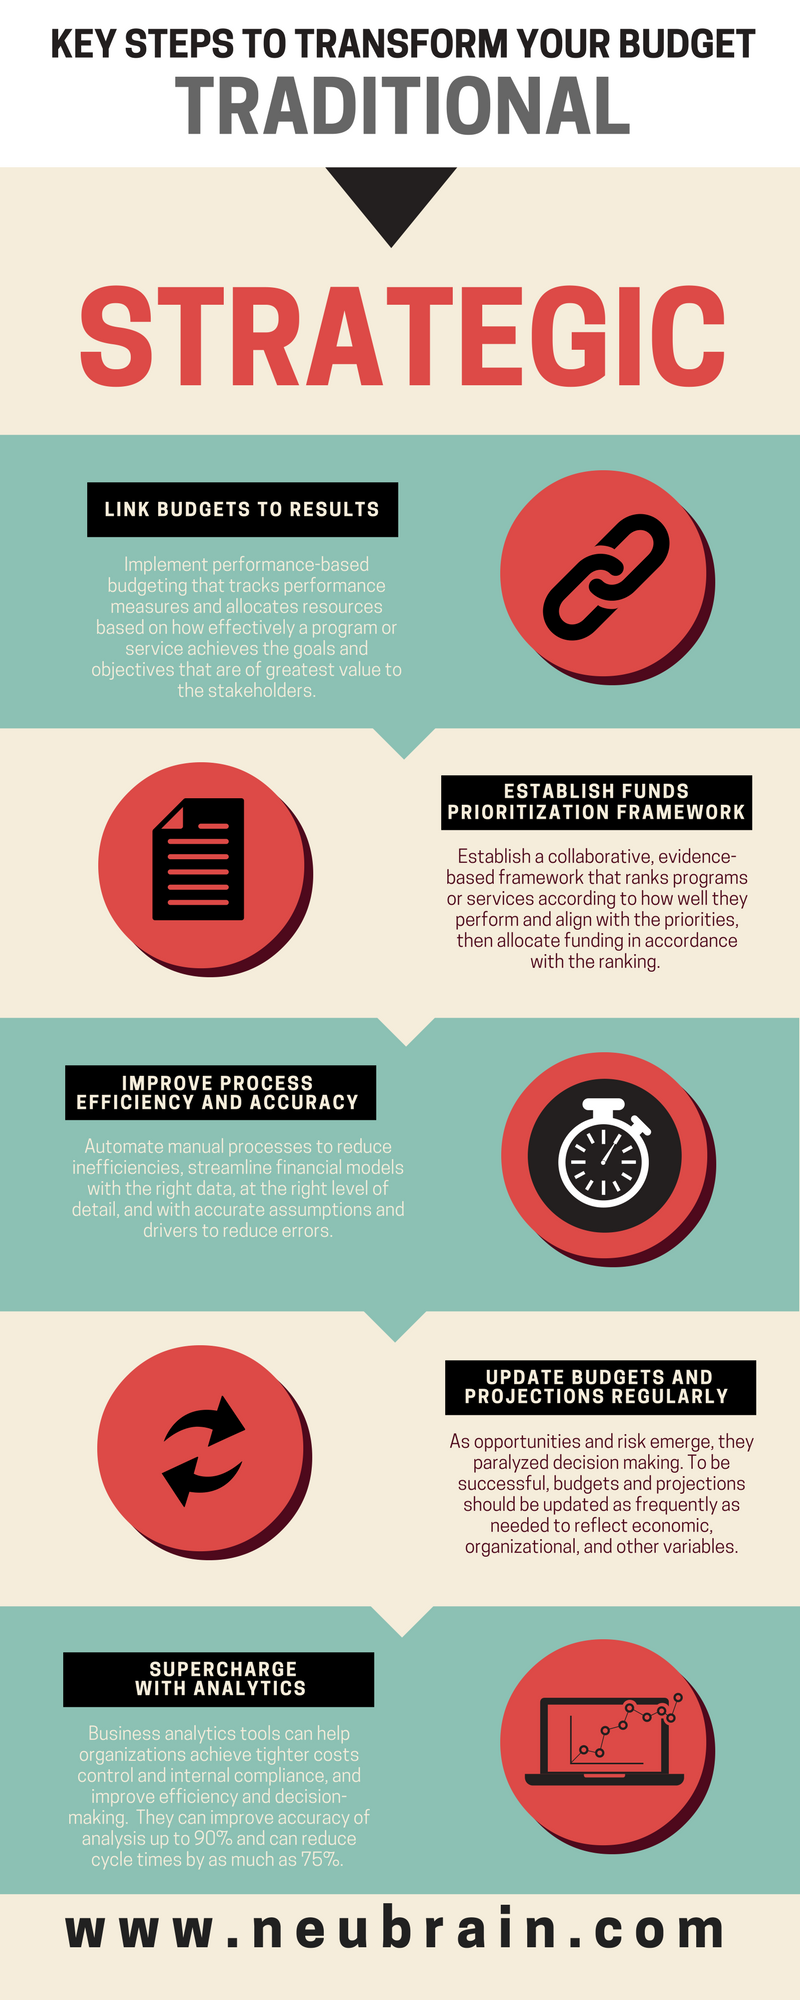 key steps to transform your budget-1.png